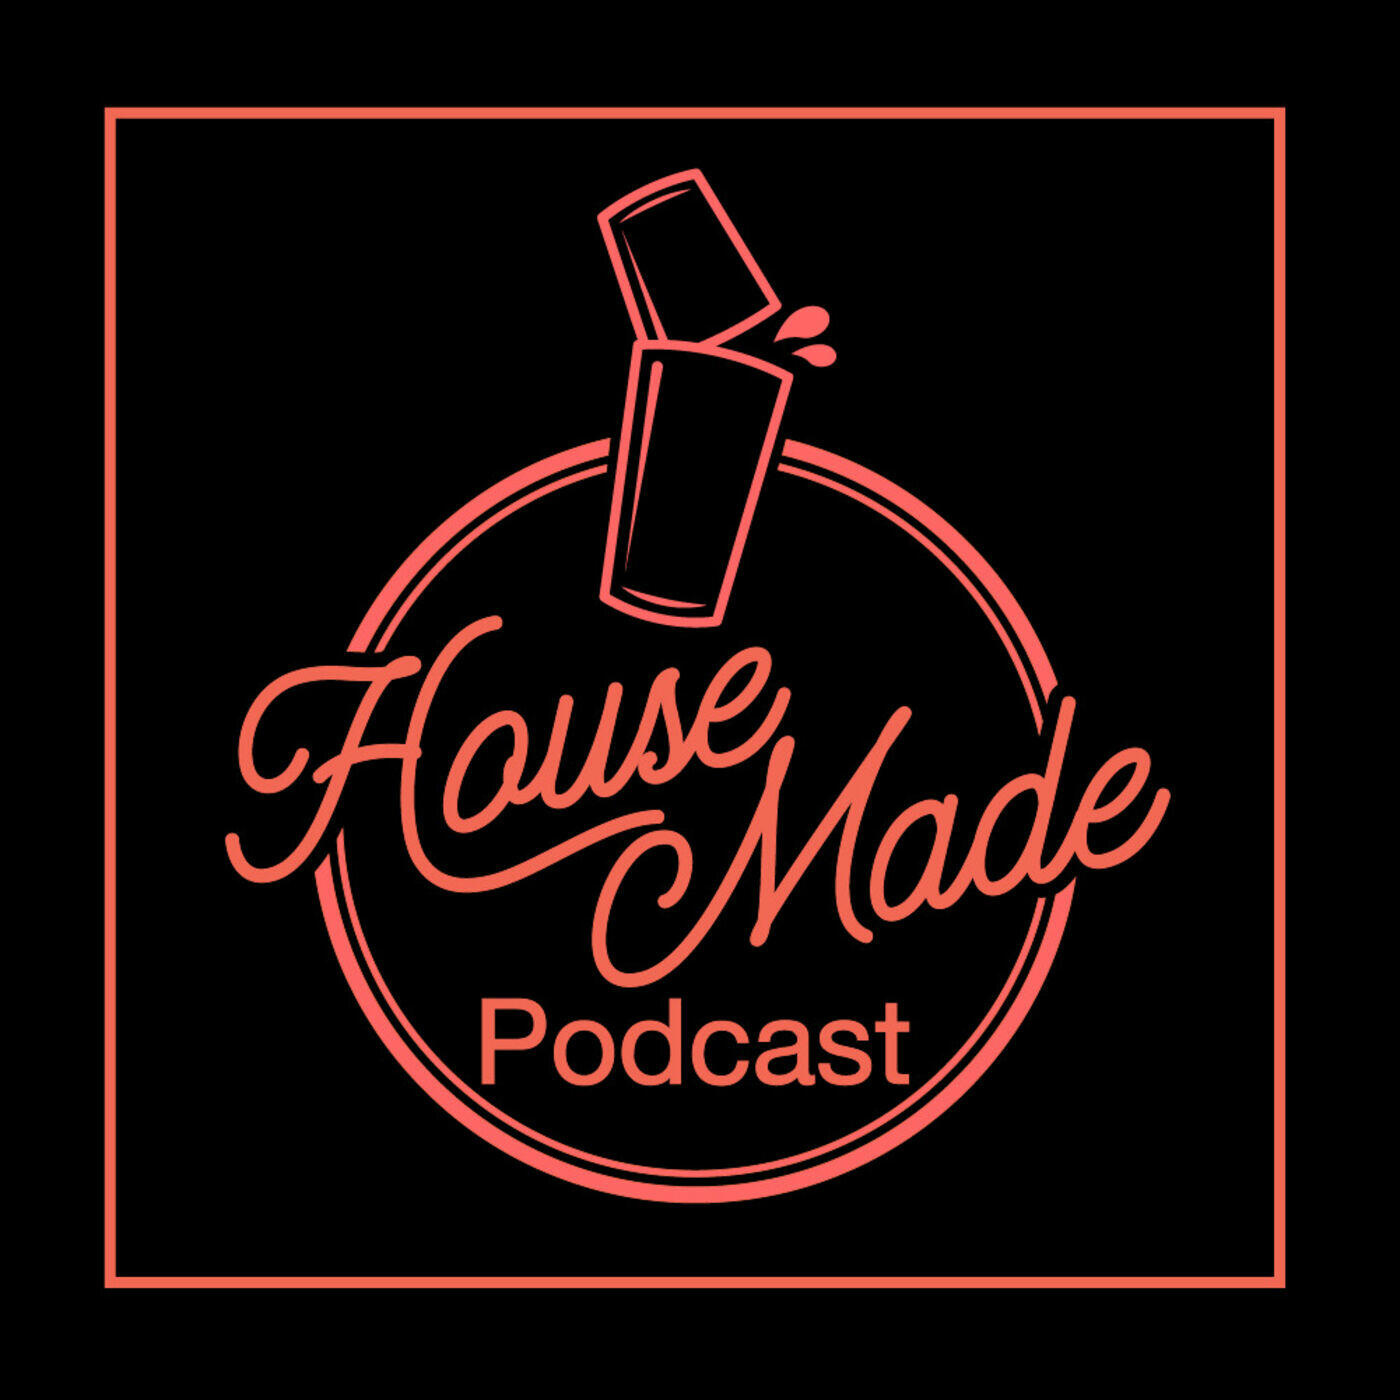 House Made Podcast